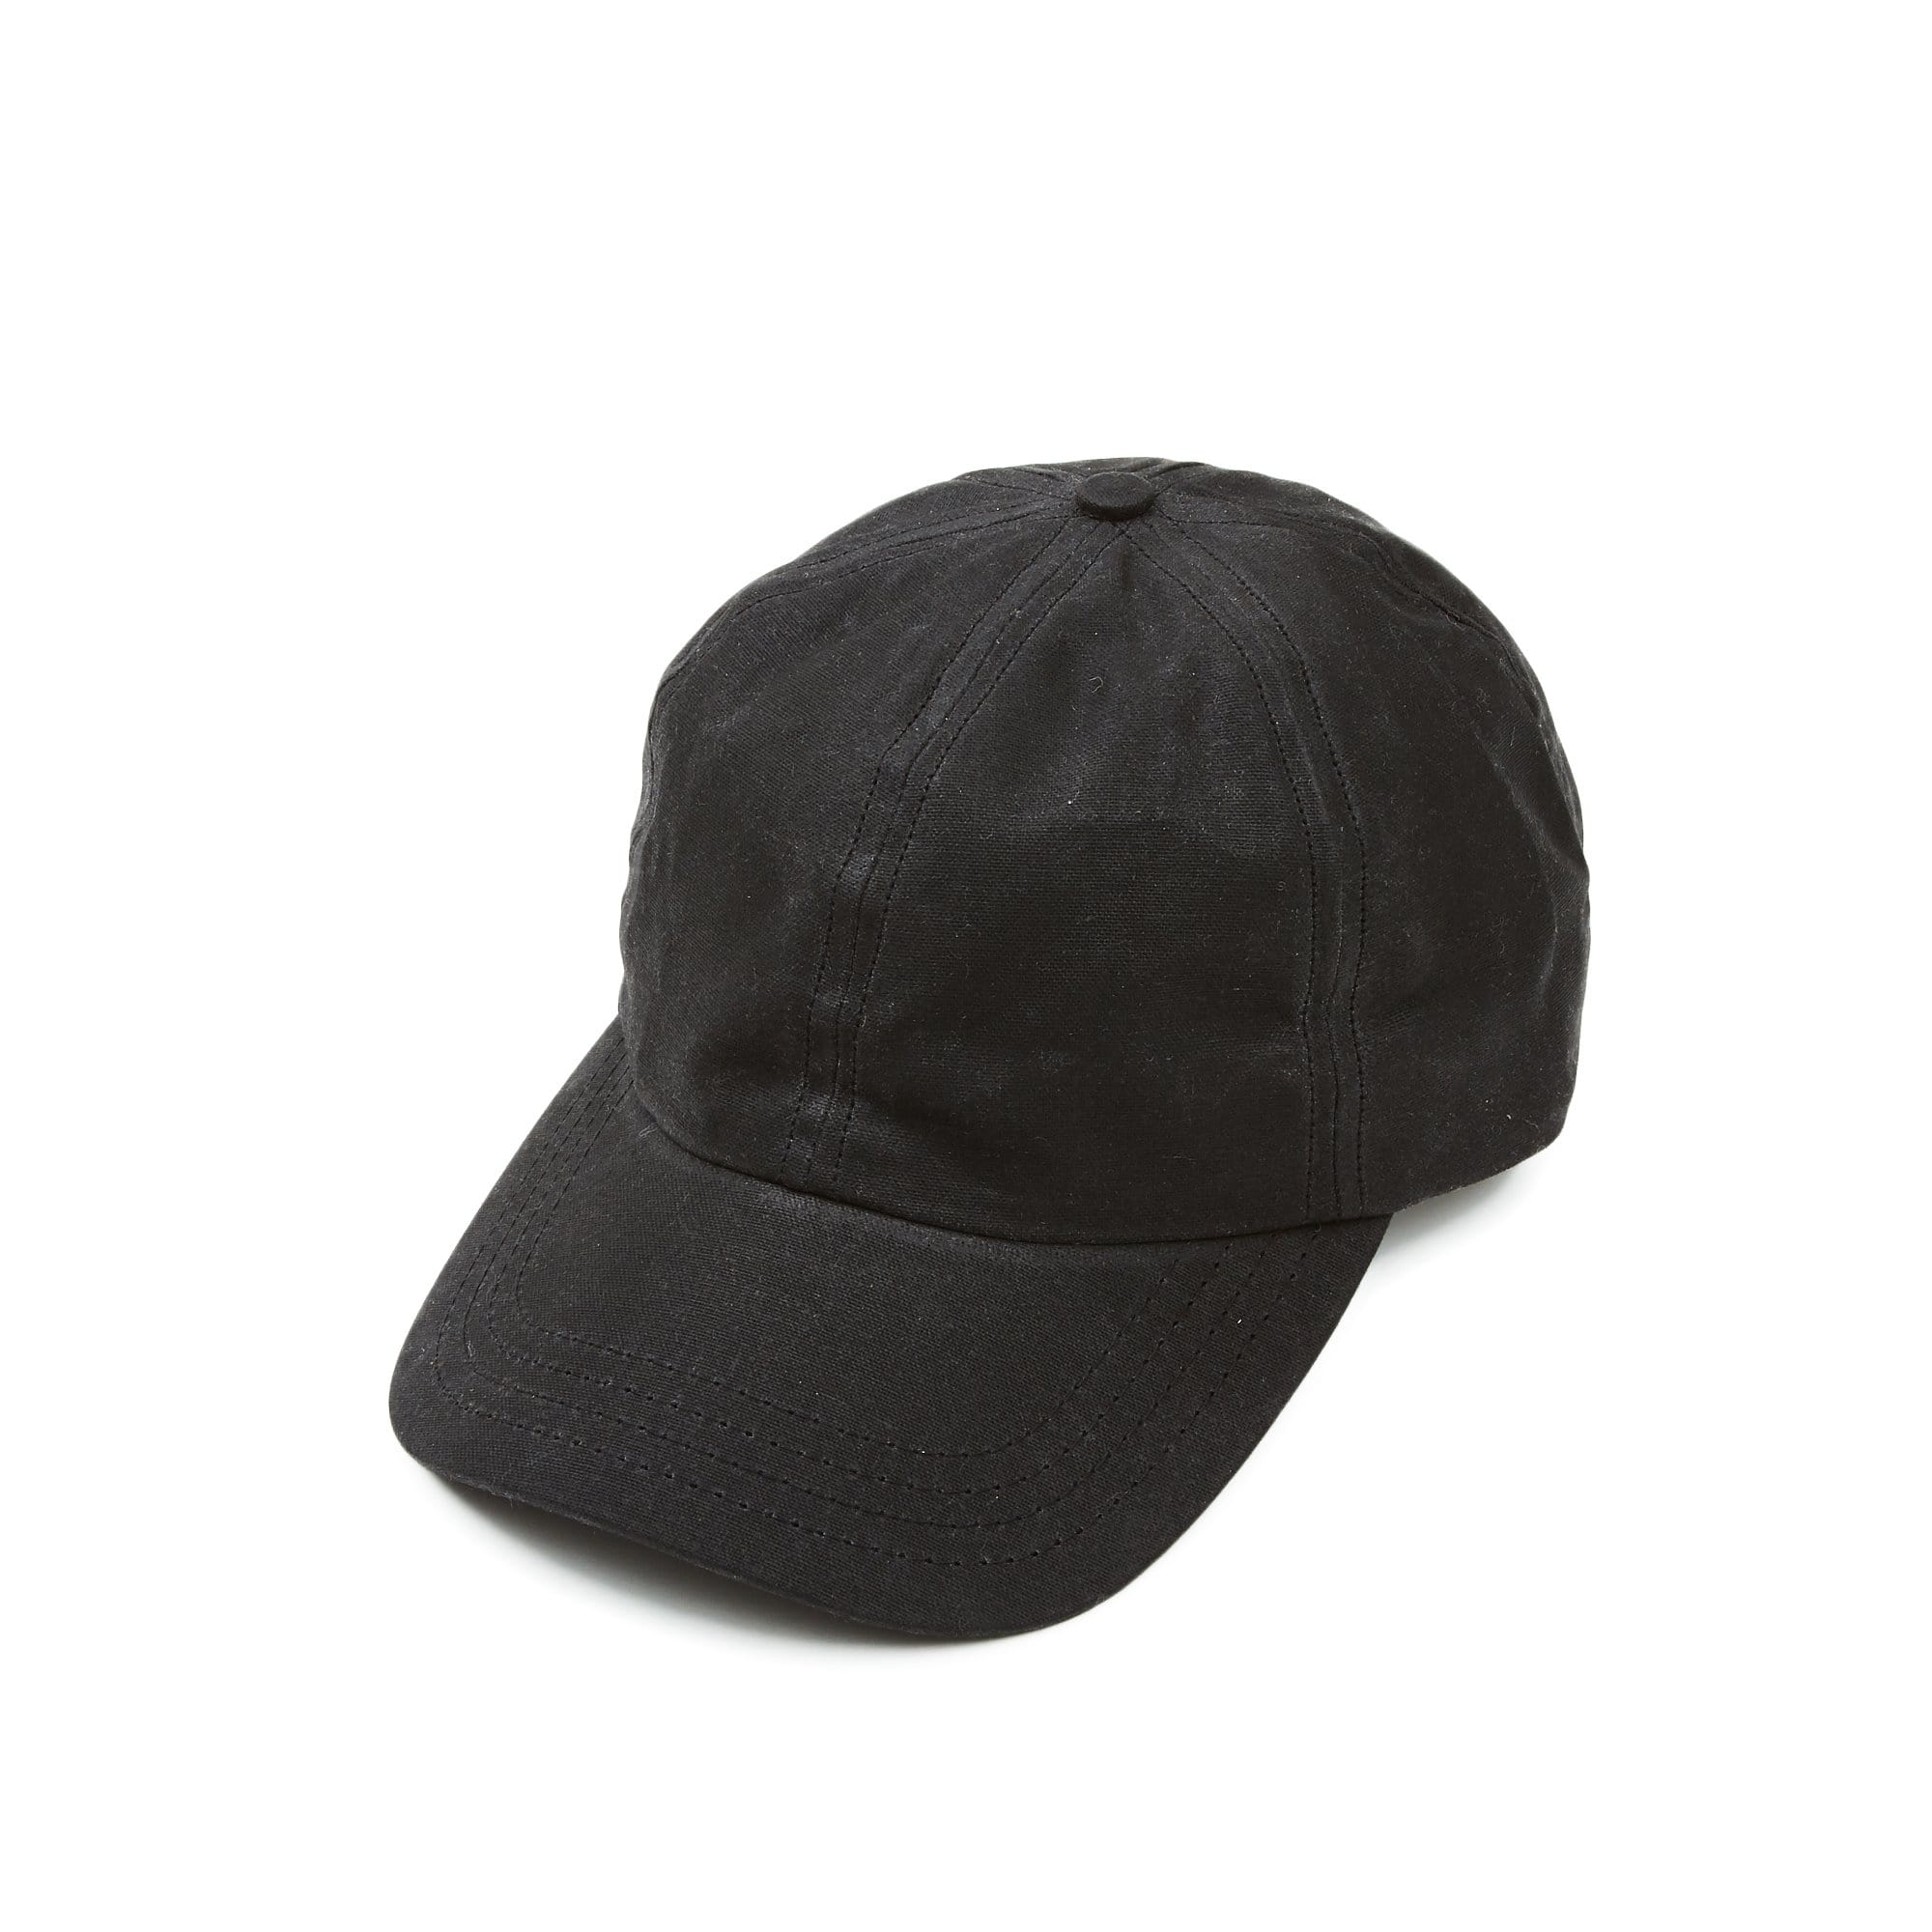 Black Waxed Waterproof Cap